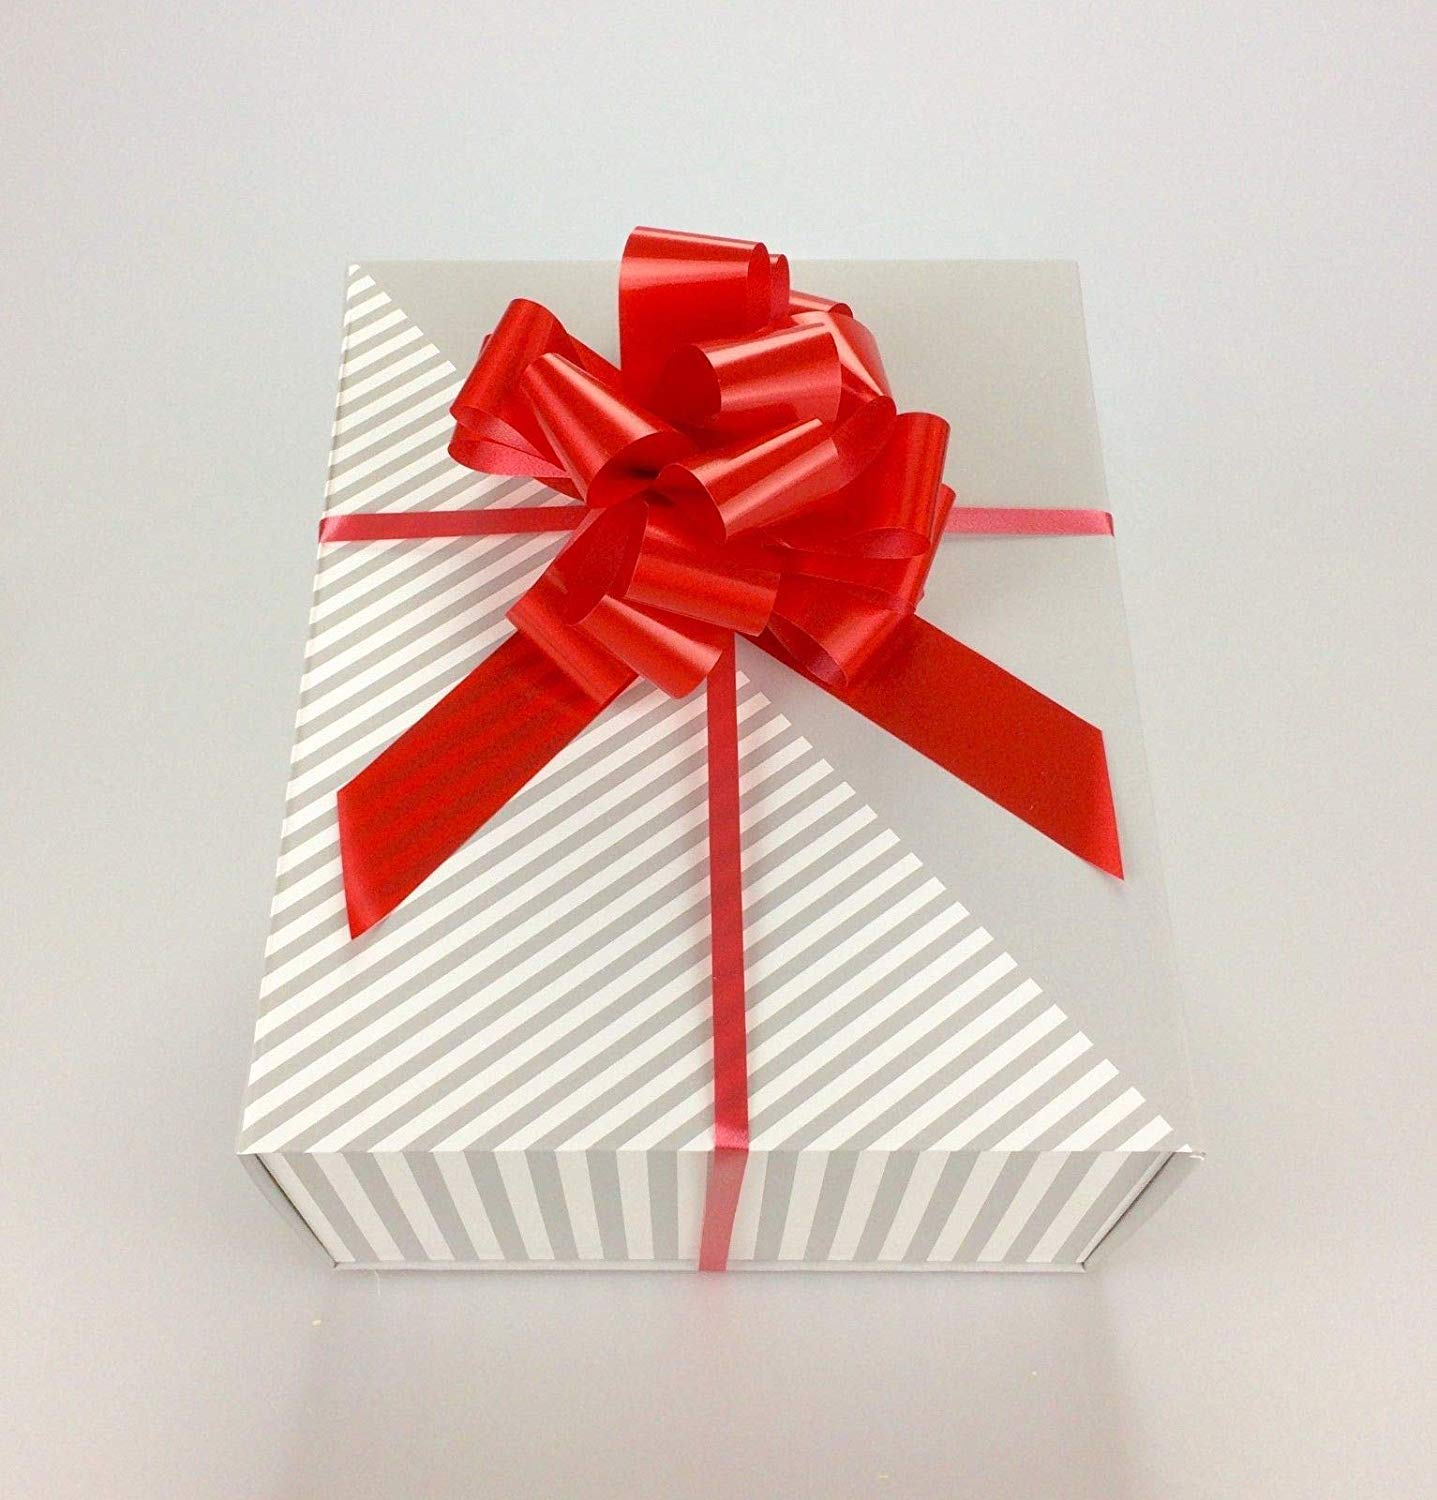 LUXURIOUS GIFT BOX LUXURY MAGNETIC BOXES FOR GIFTS WEDDING XMAS CORPORATE EVENTS